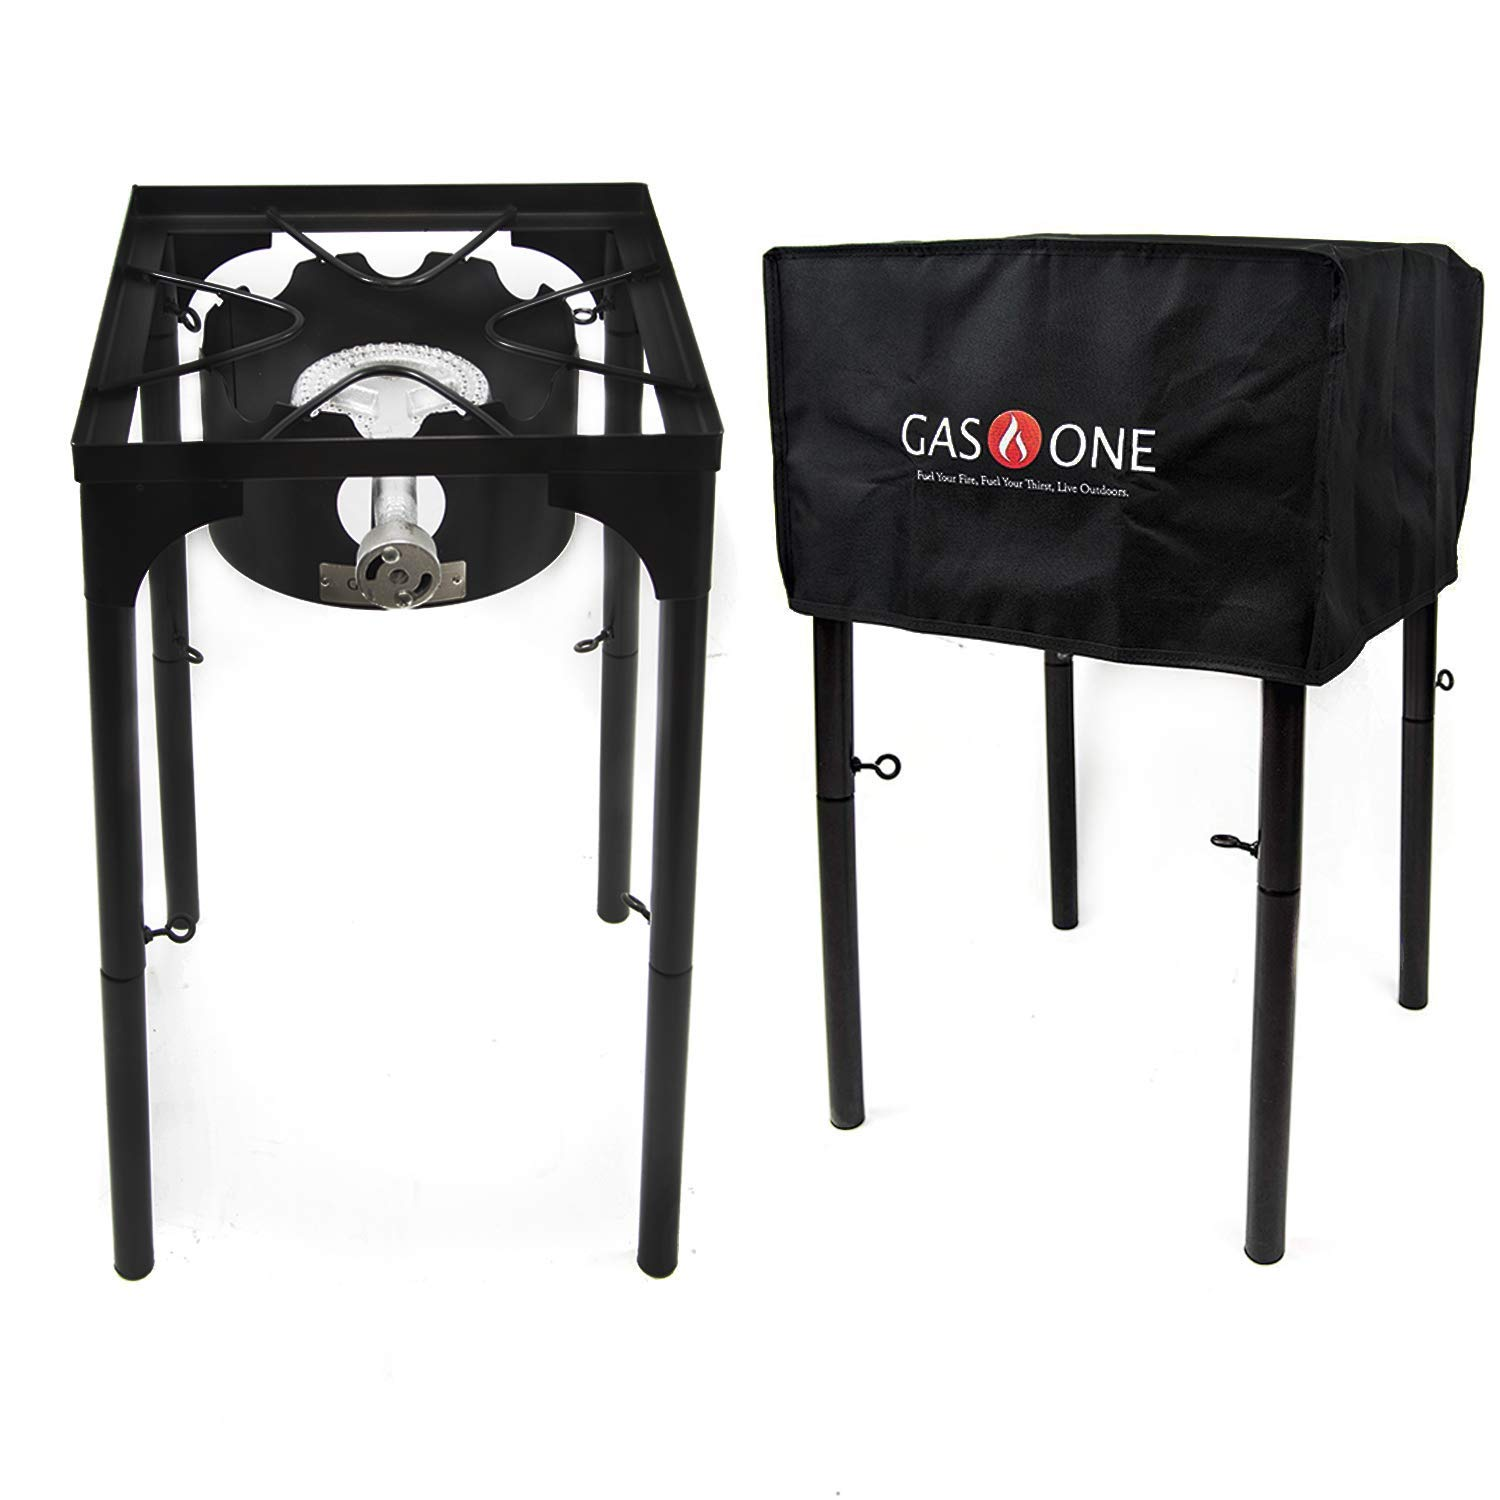 GasOne B-3000H-1+50480 Propane Burner with Cover 100,000-BTU High Pressure Stove, Black by GasOne